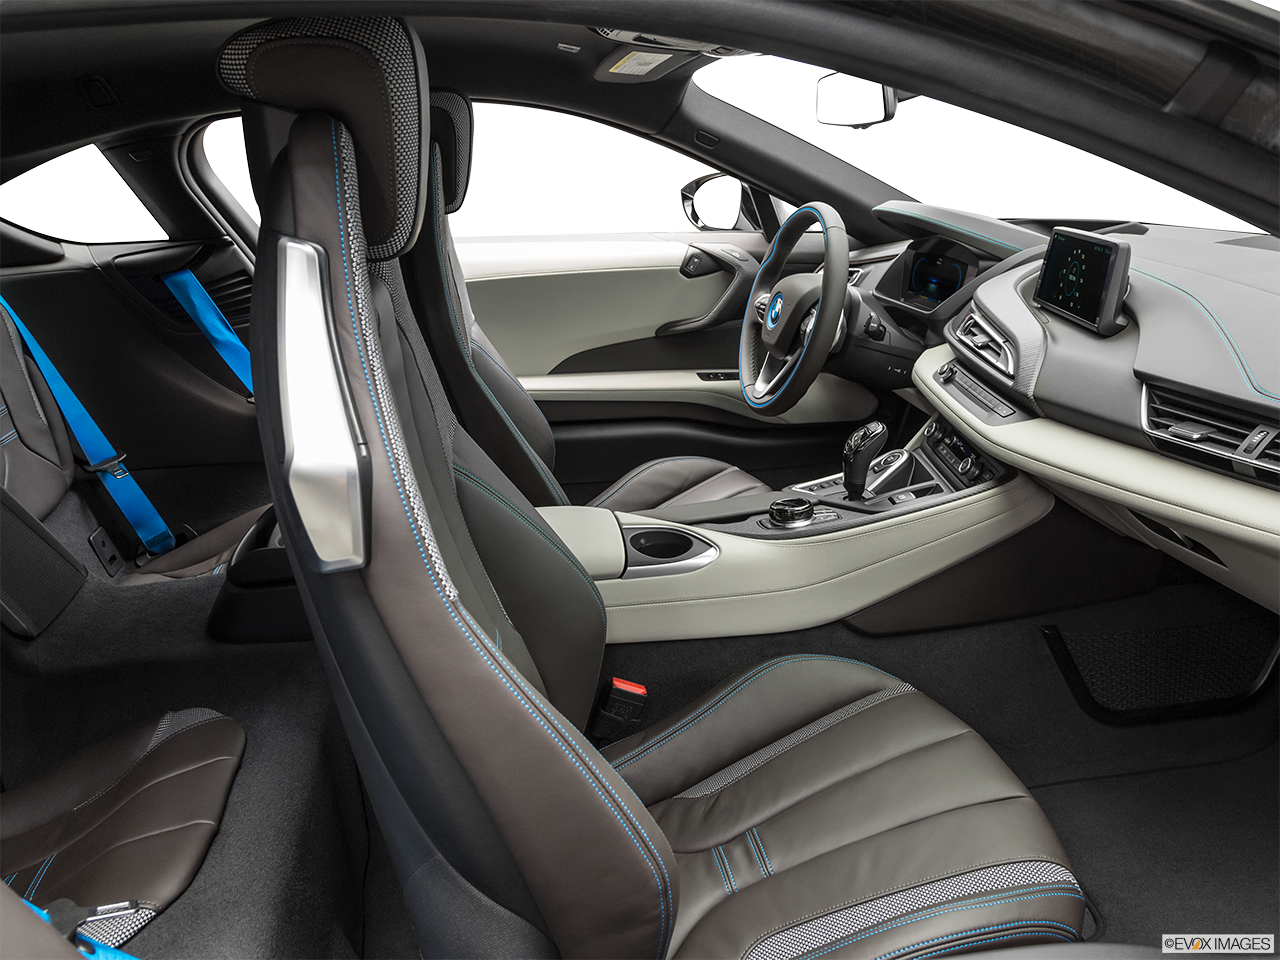 Interior view of the BMW i8